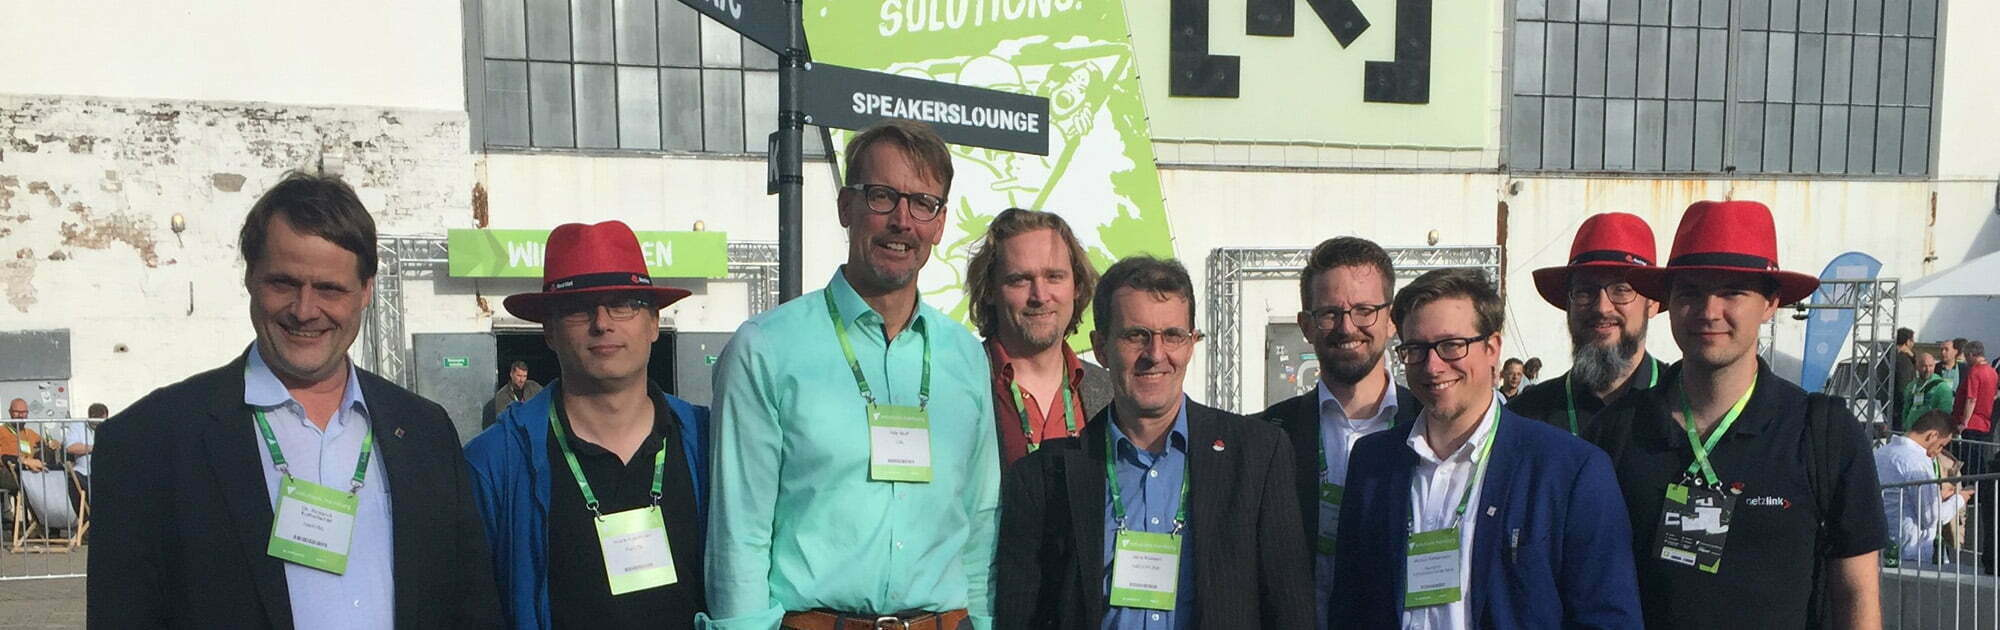 GROUPLINK solutions.hamburg Titelbild